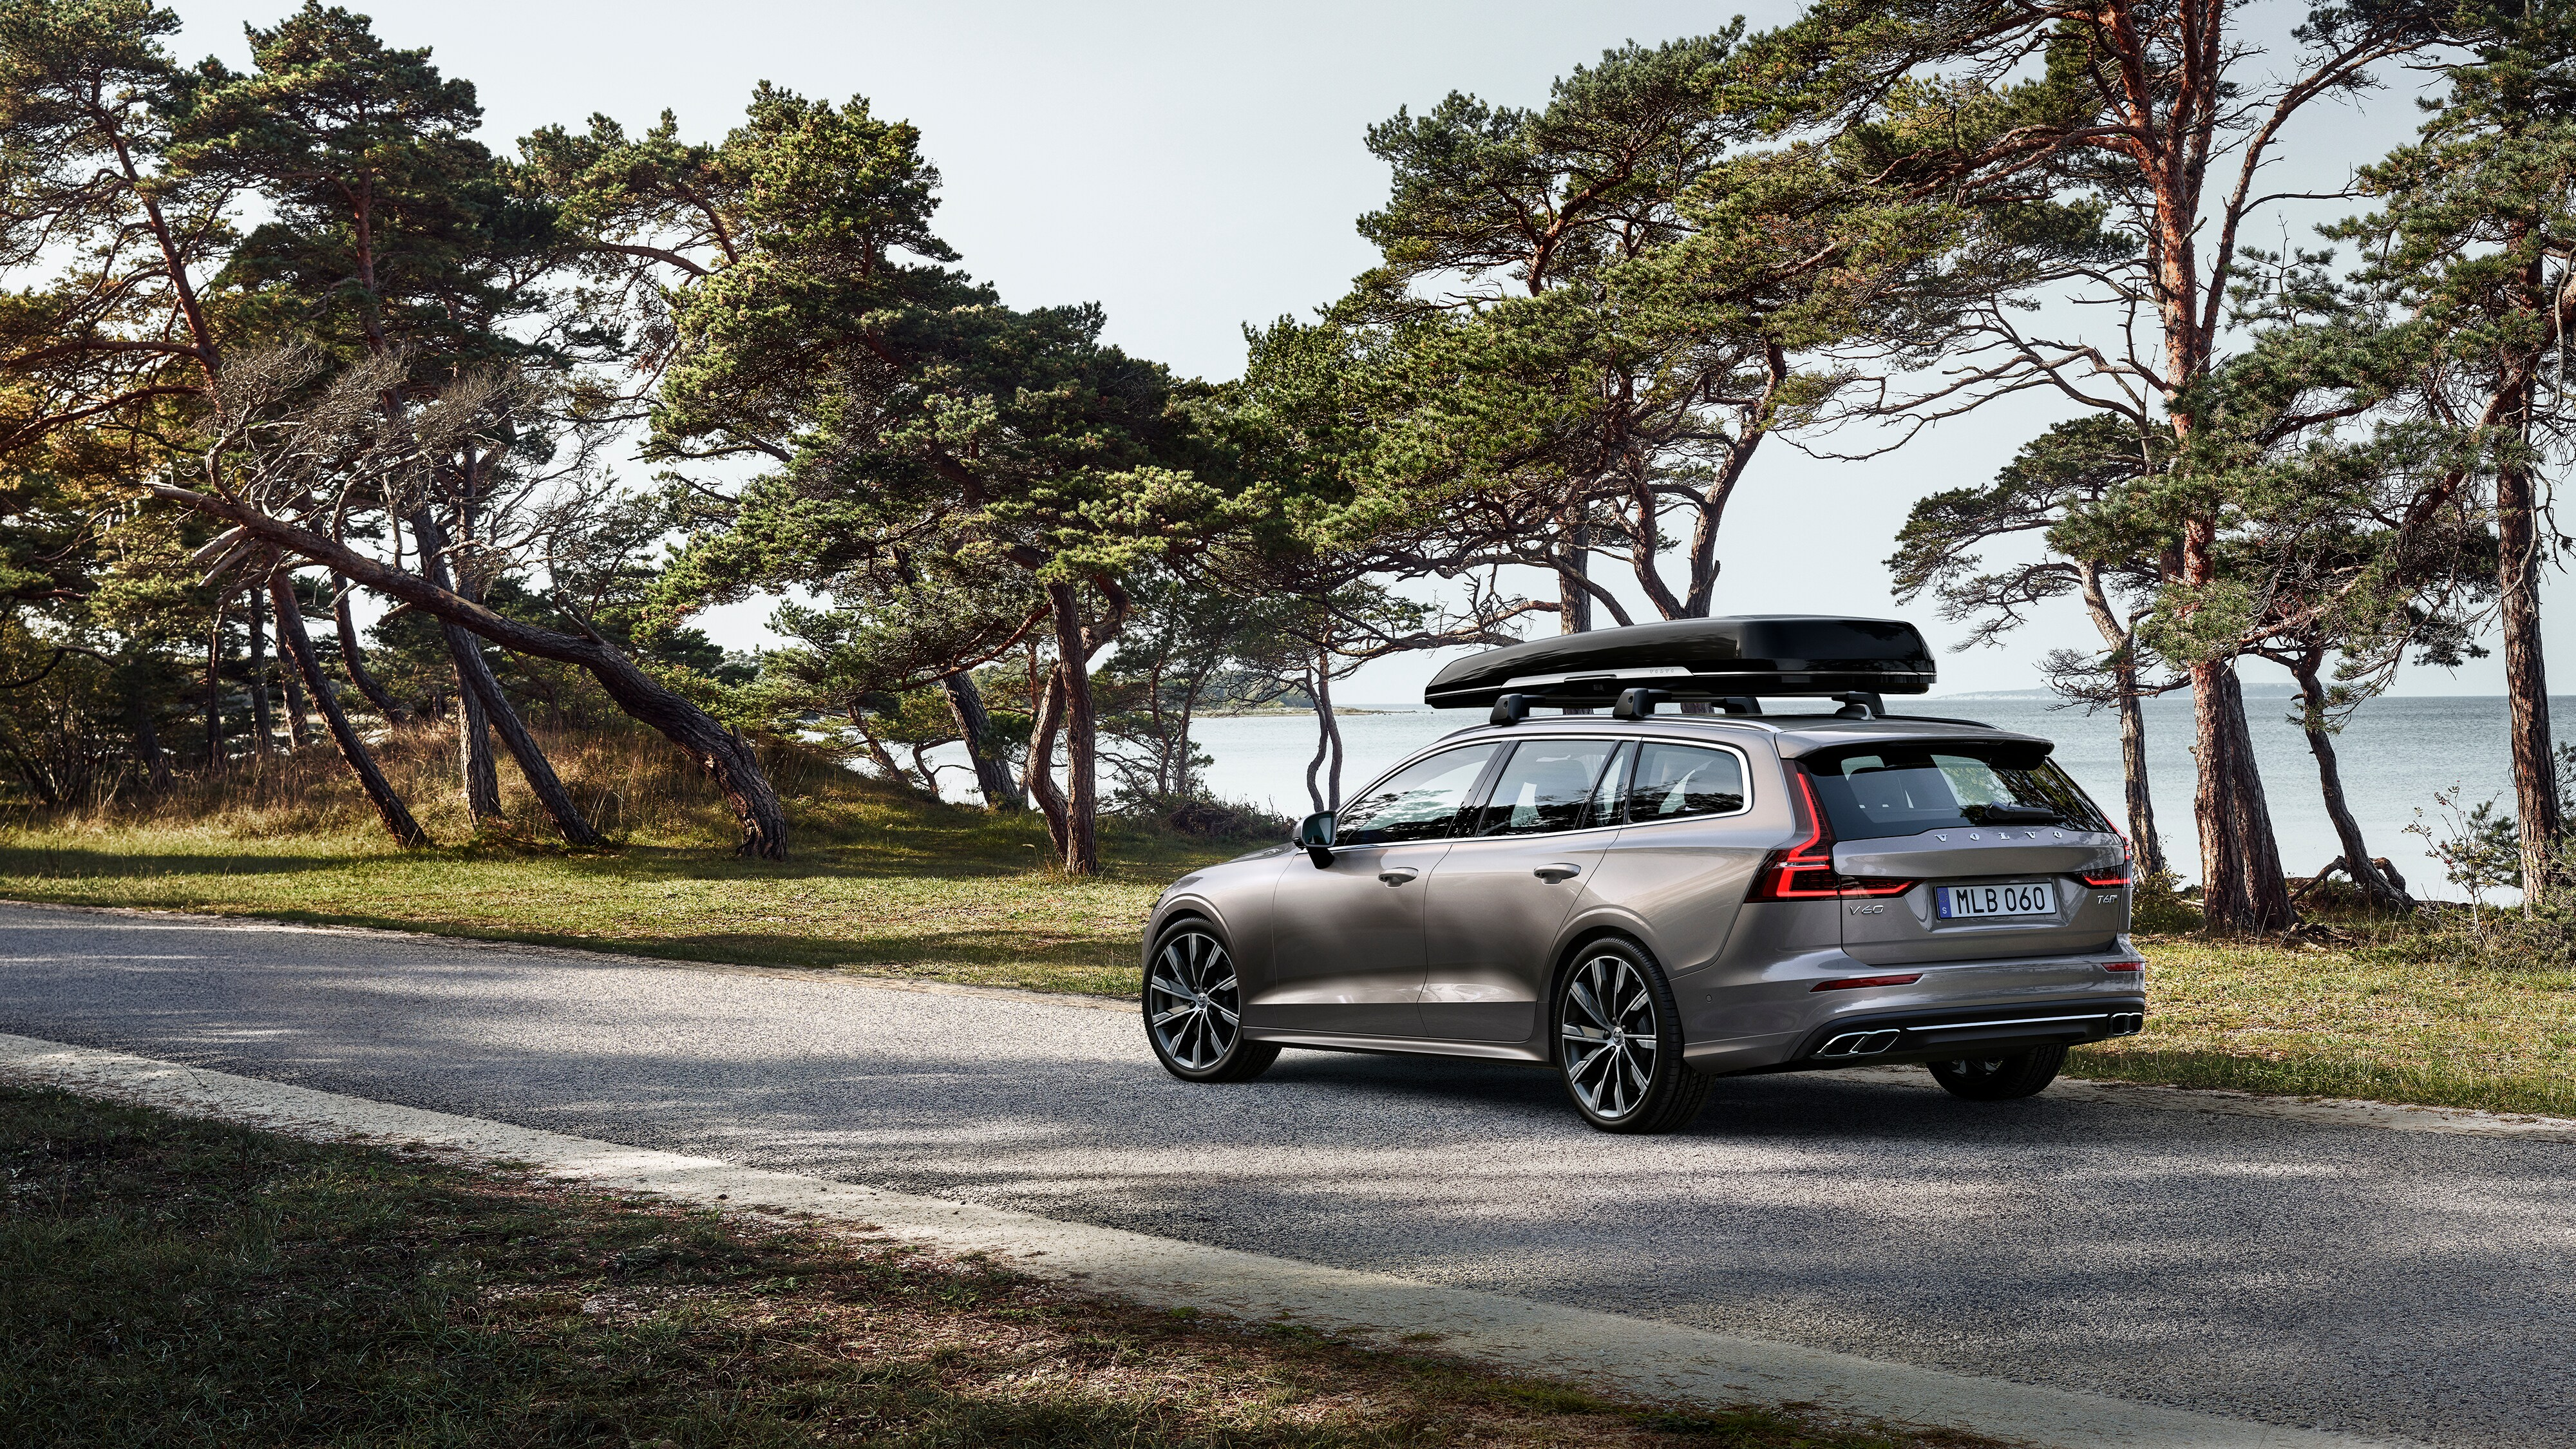 V60, equipped with a roofbox, travels down a country road